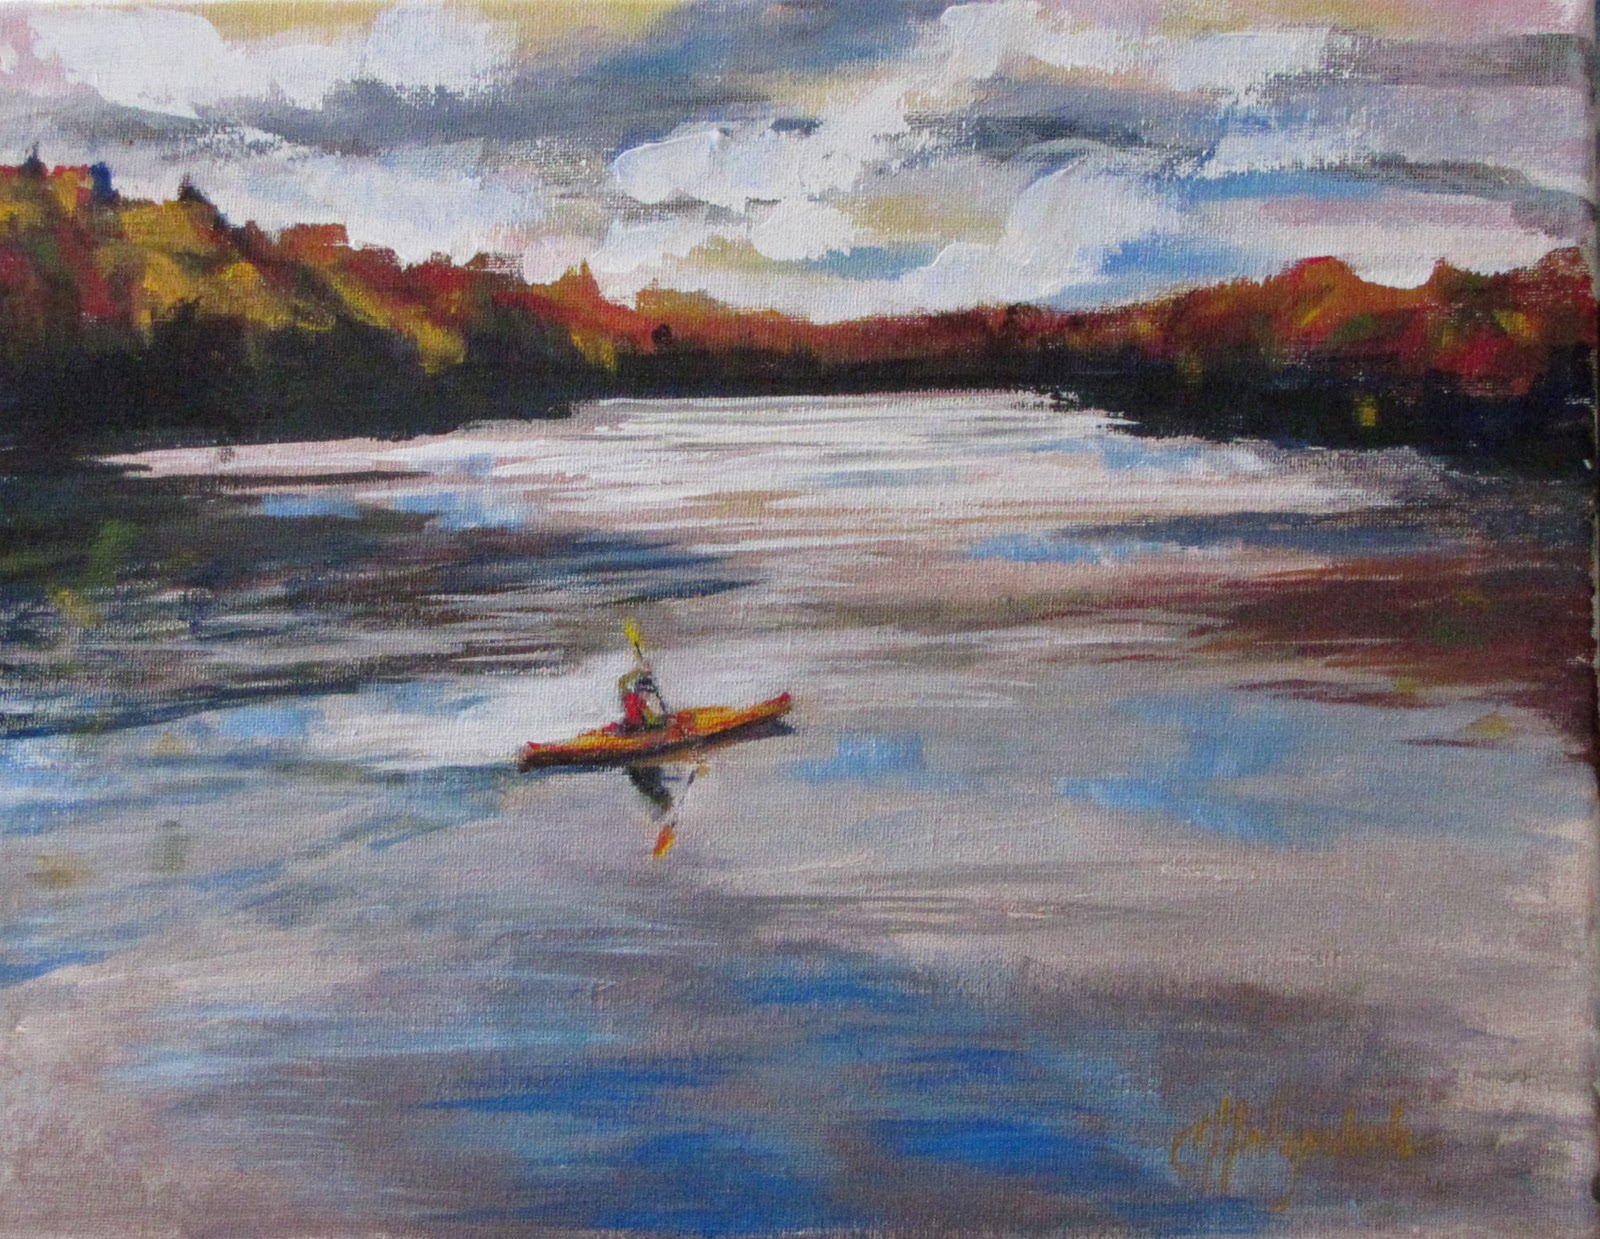 Quiet chilly autumn morning wrapped in a kayak doing the paddle dance